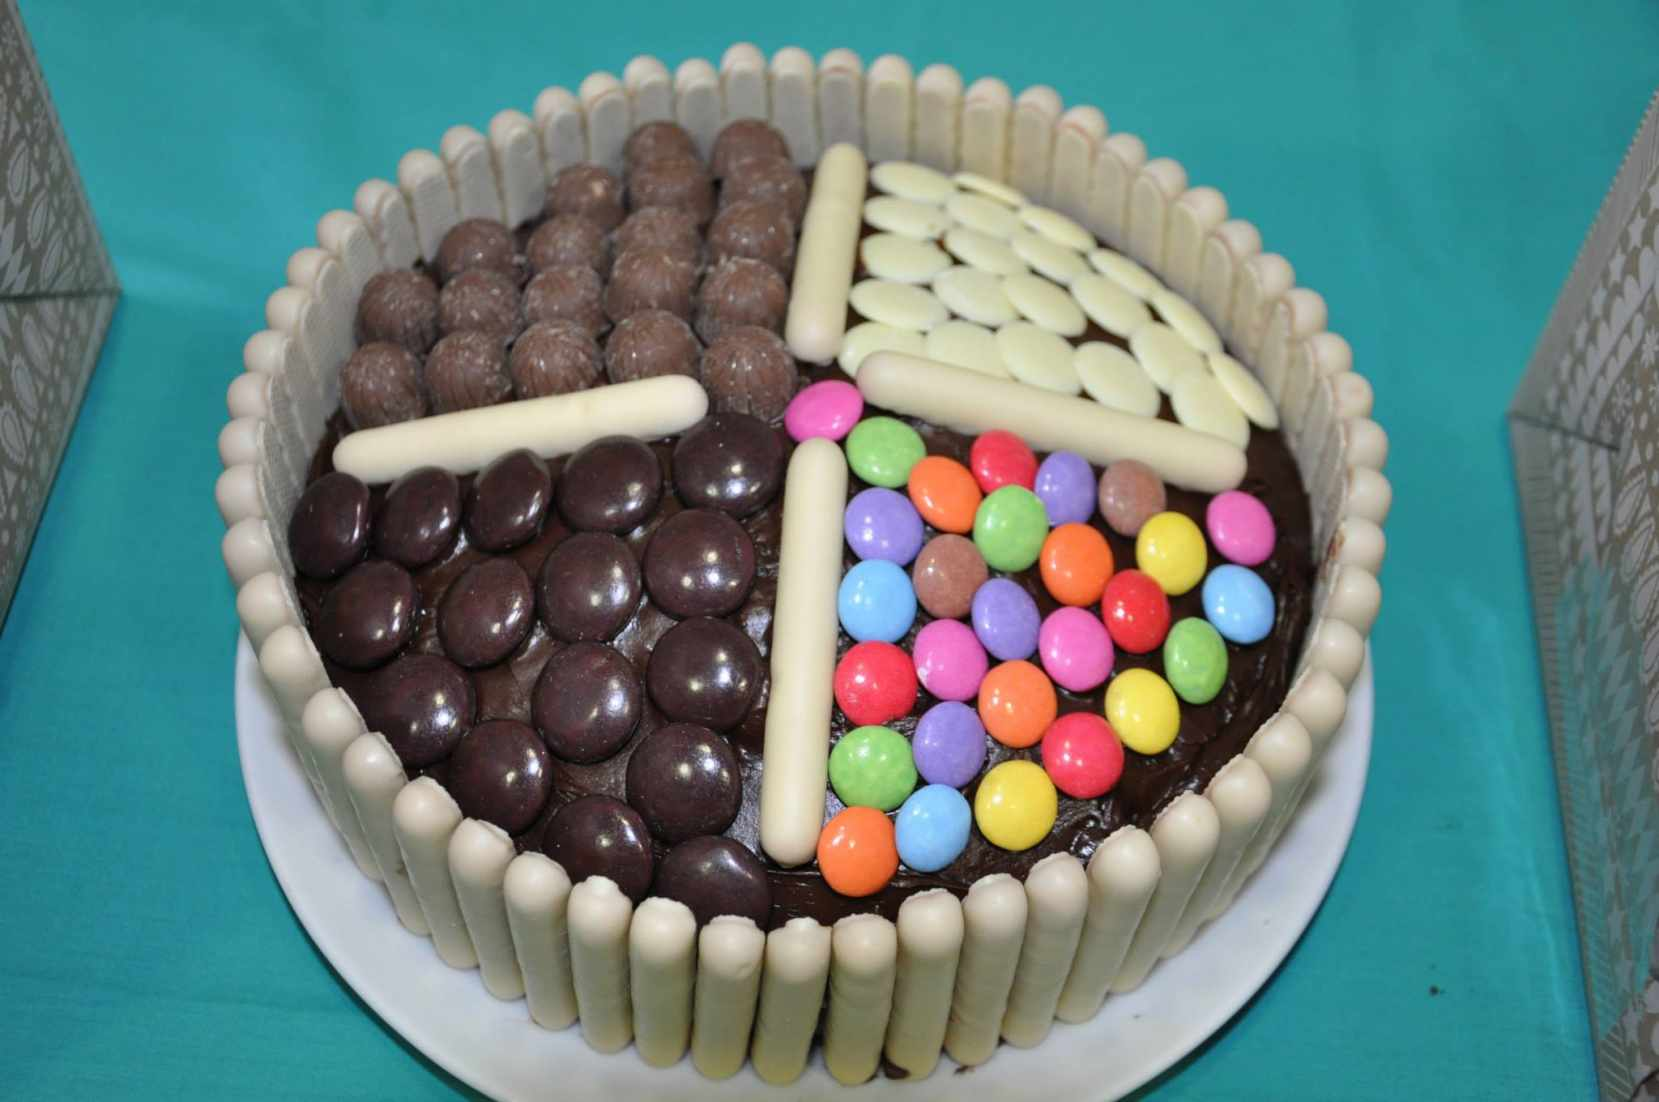 One of the cakes made for sale in aid of the spinal injuries charity, Aspire.